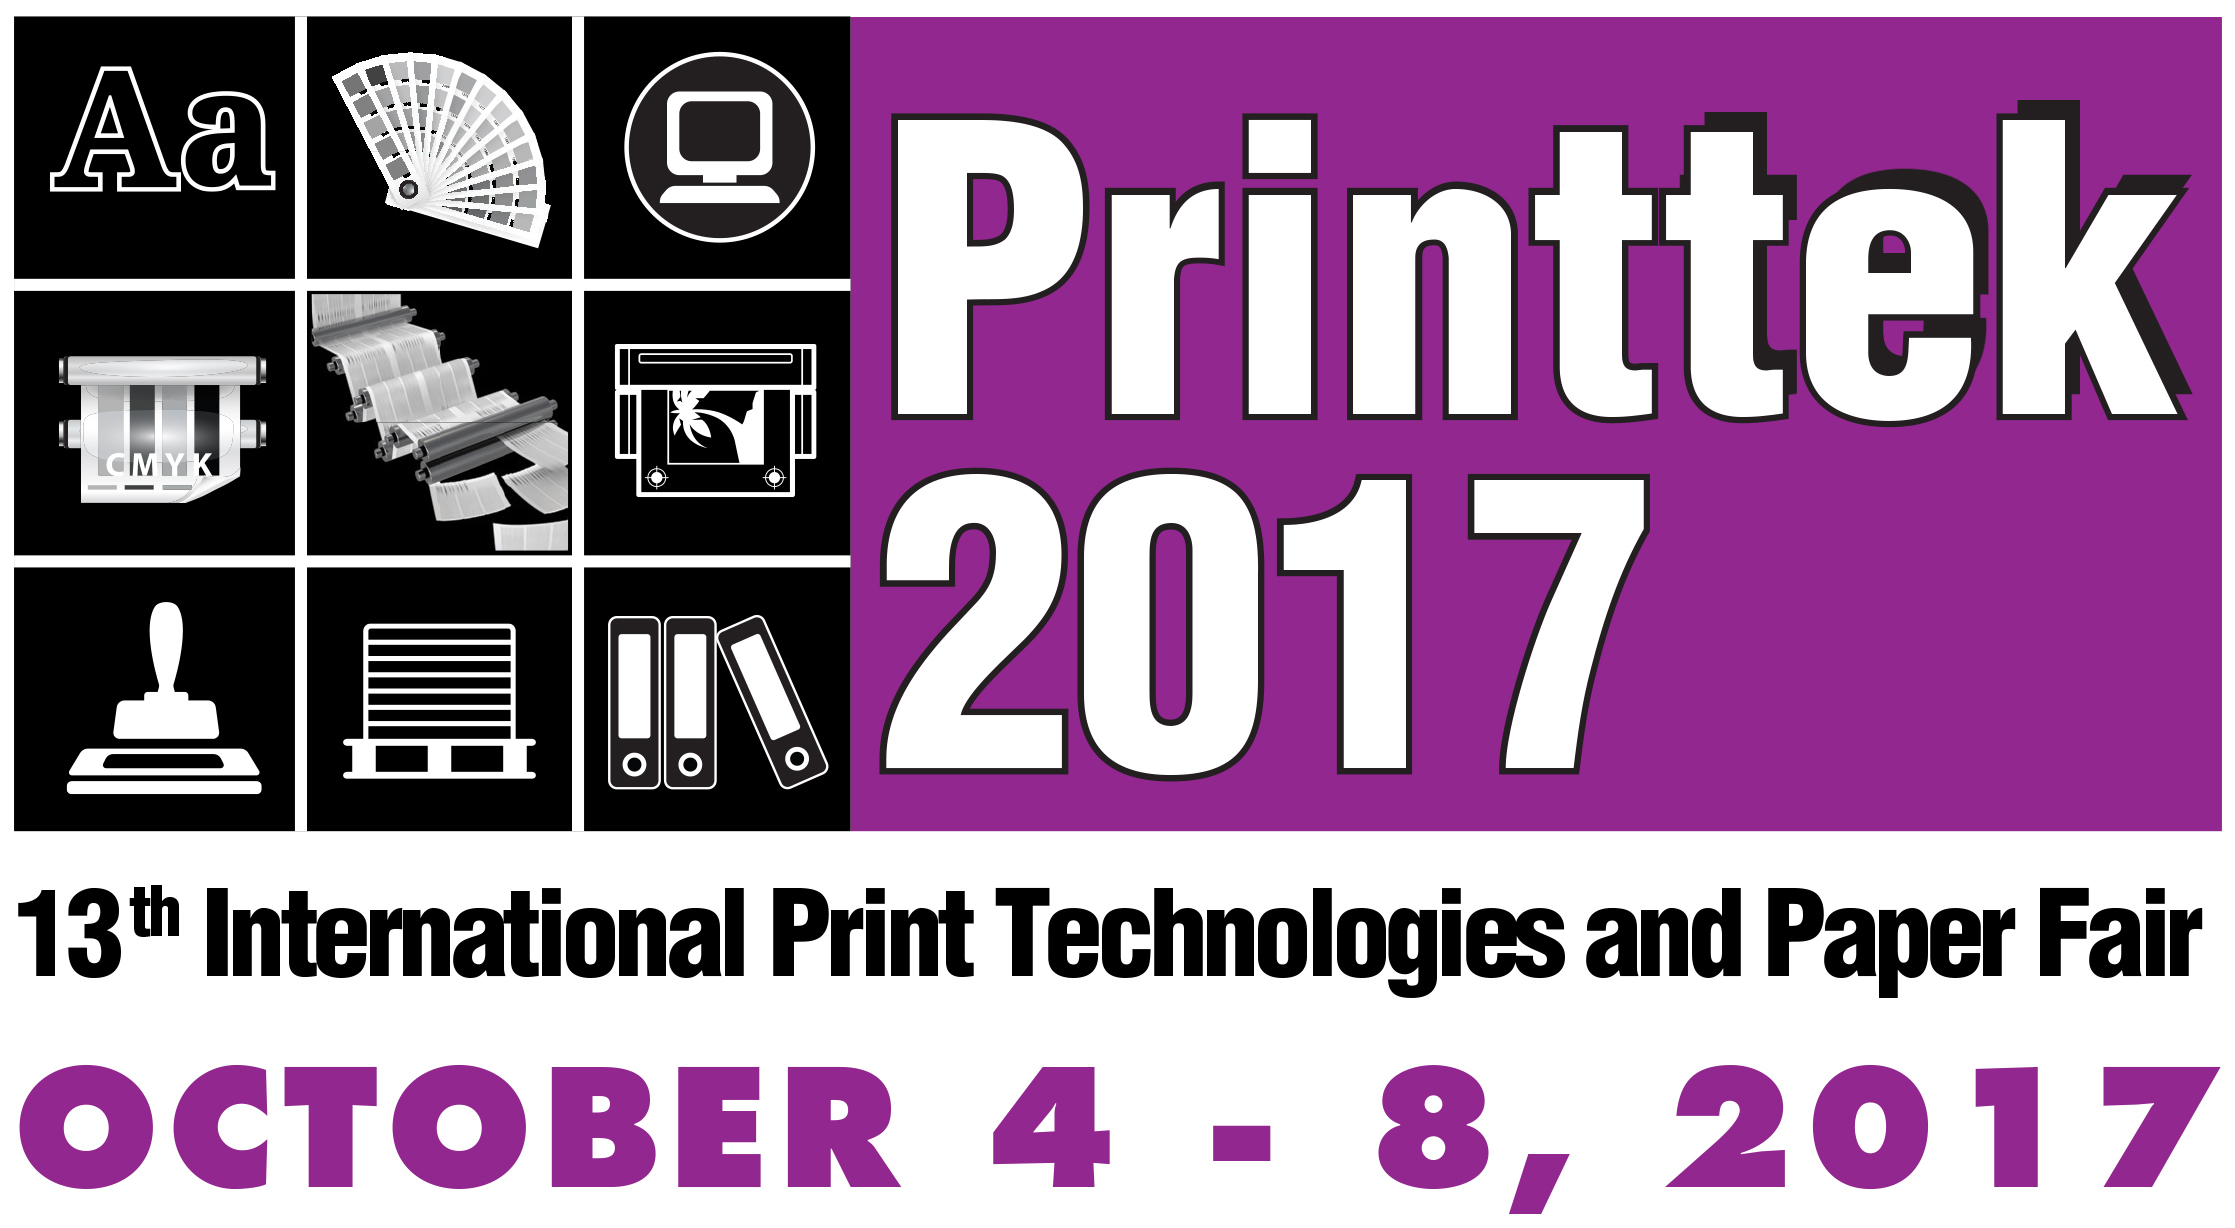 Printtek 2017, 13th International Print Technologies and Paper Fair